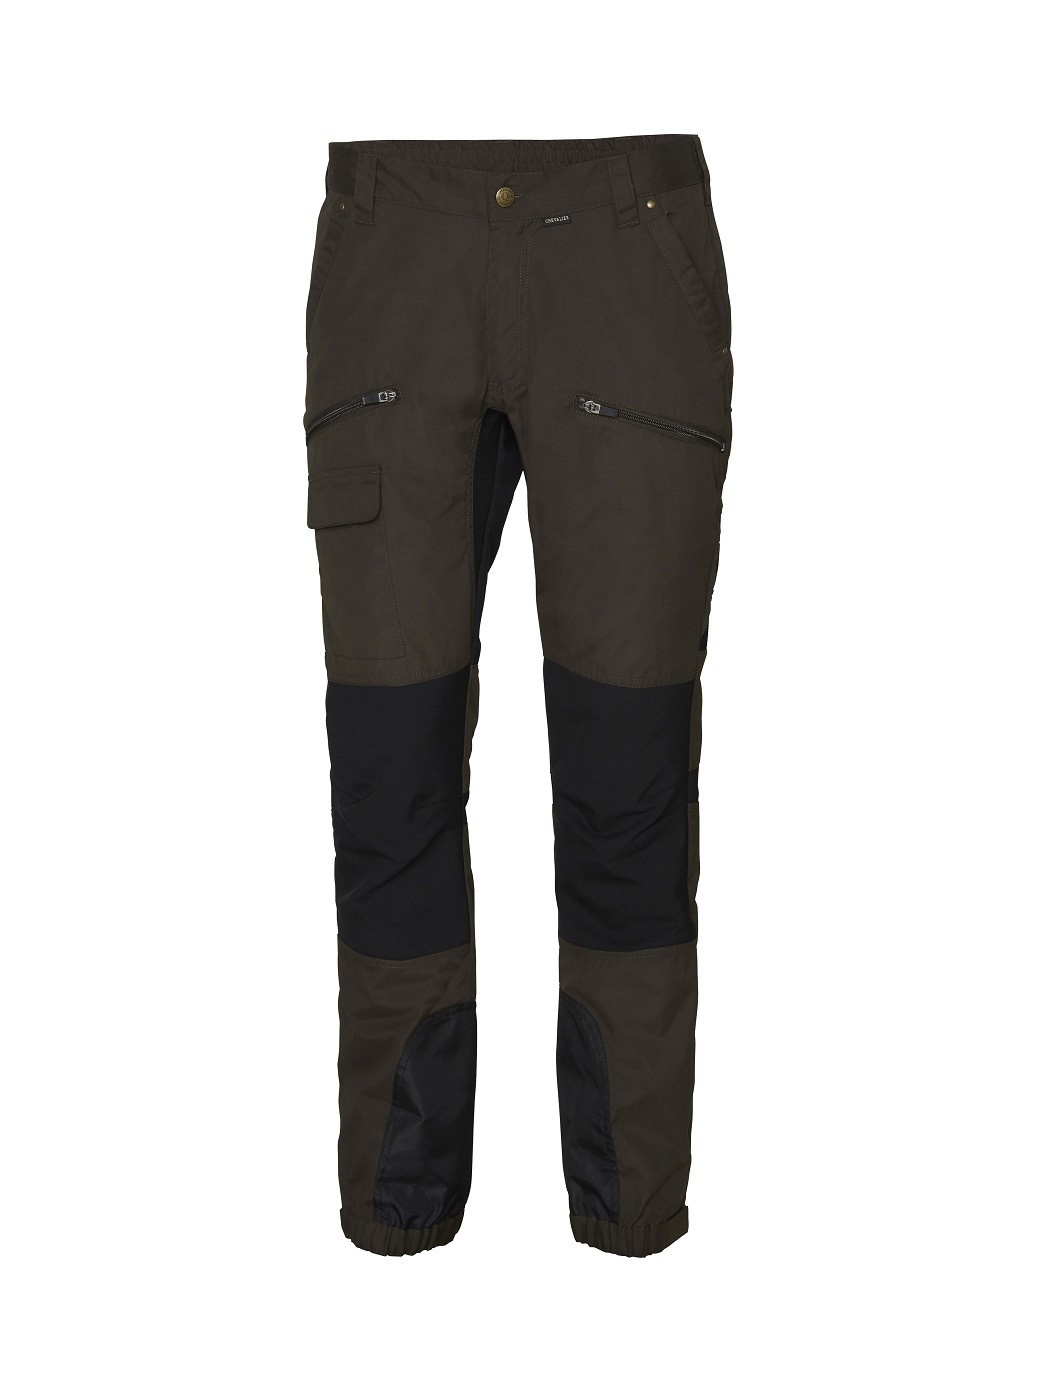 Chevalier Alabama Vent Pro Pant Women Brown Black-1